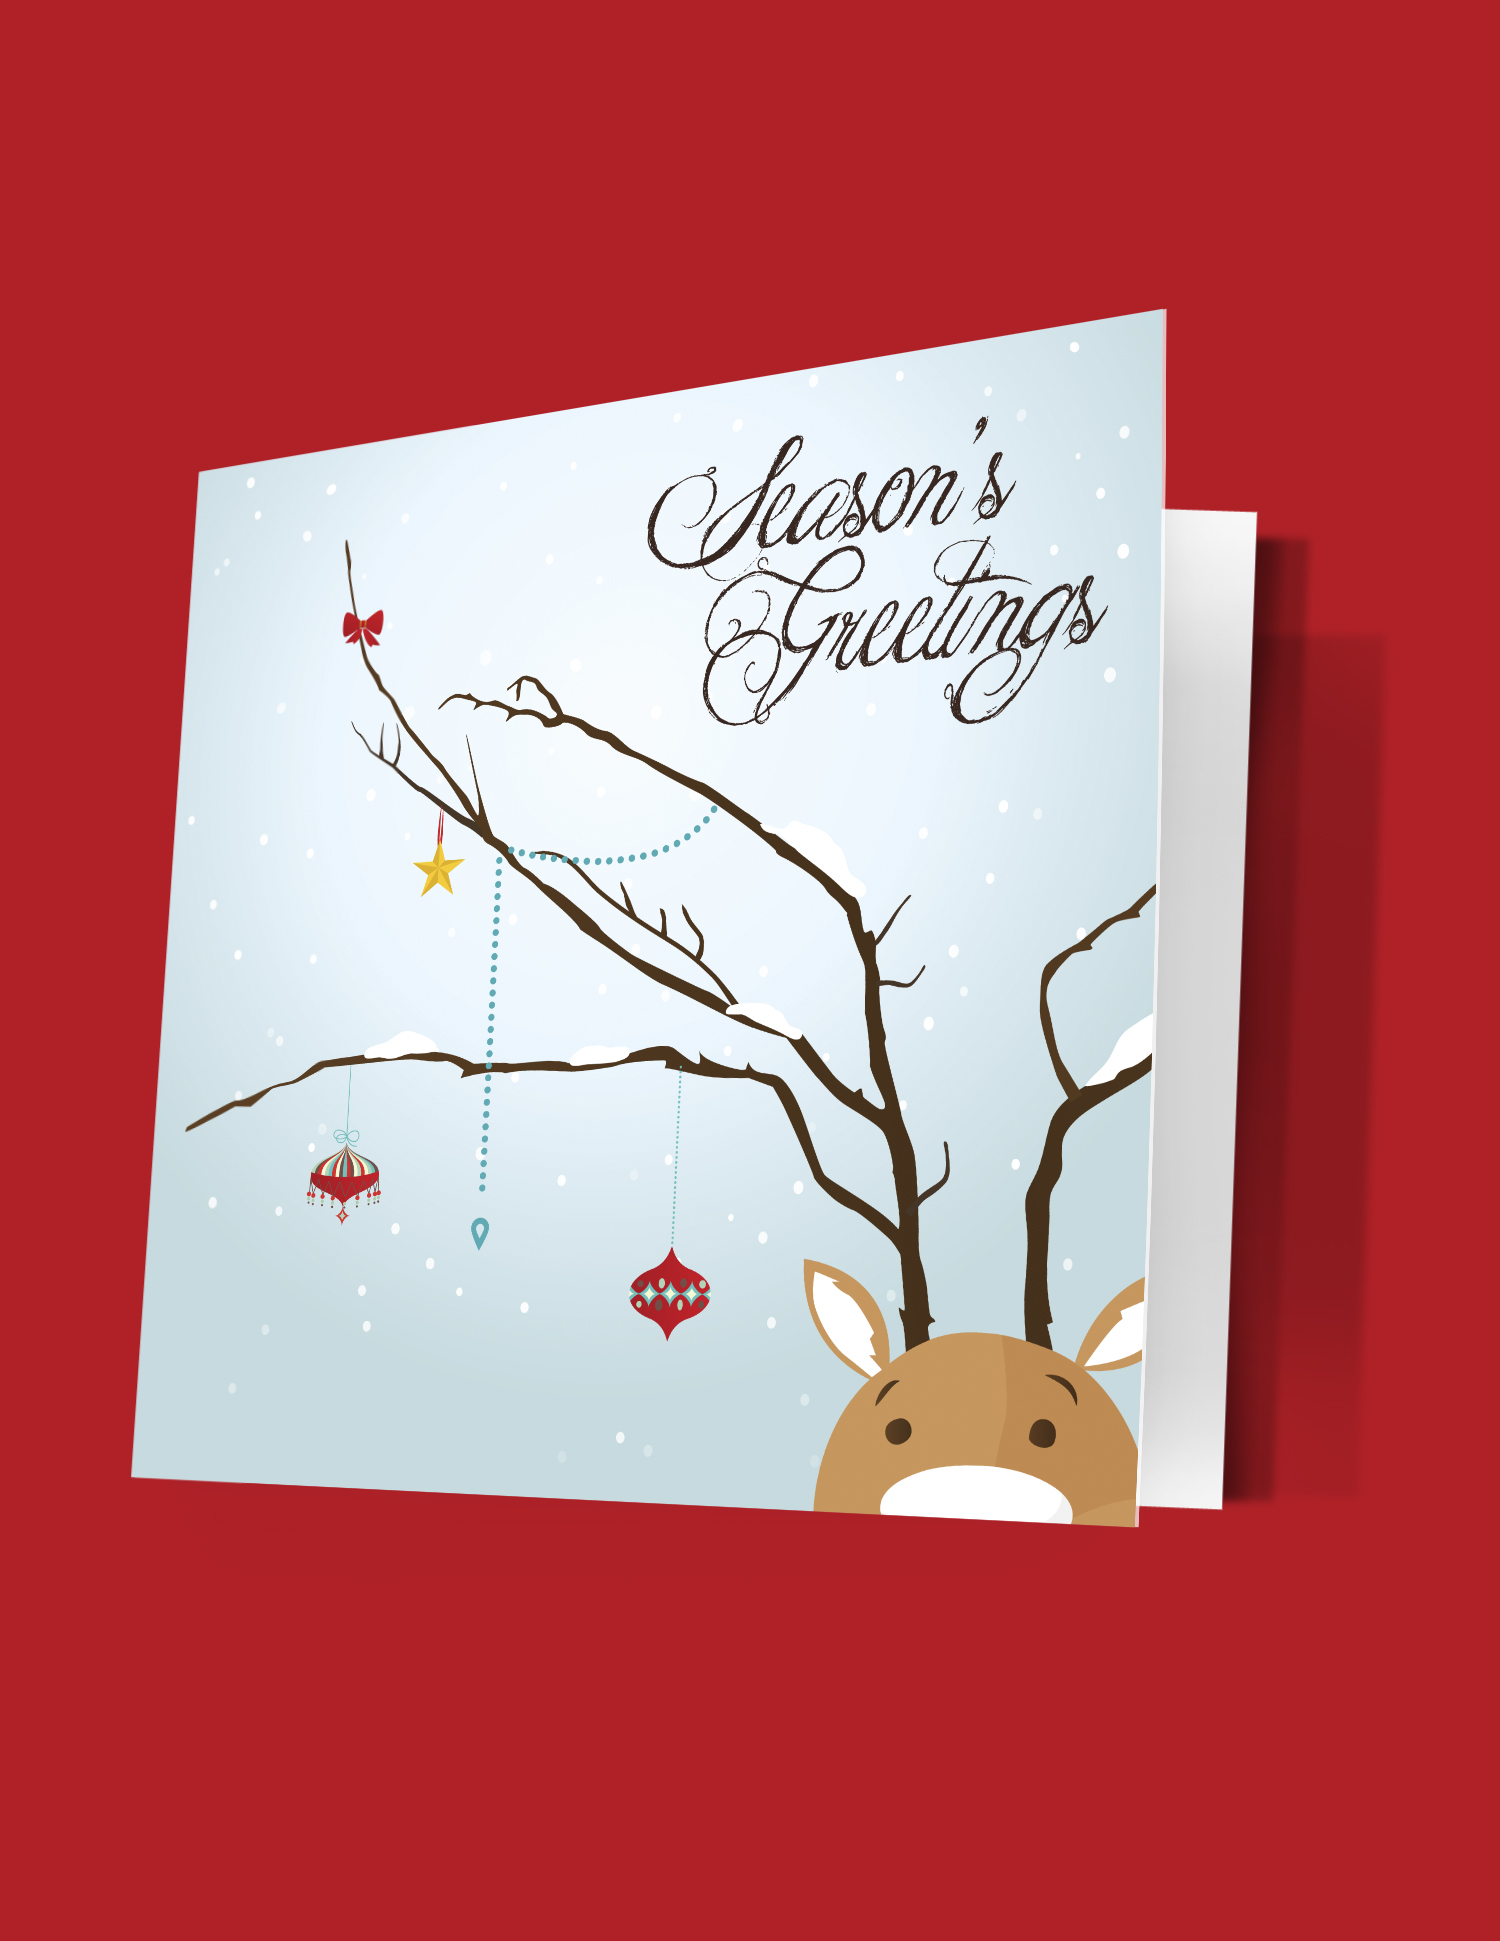 GreetingCard_McConnell_Printing_Winter Park